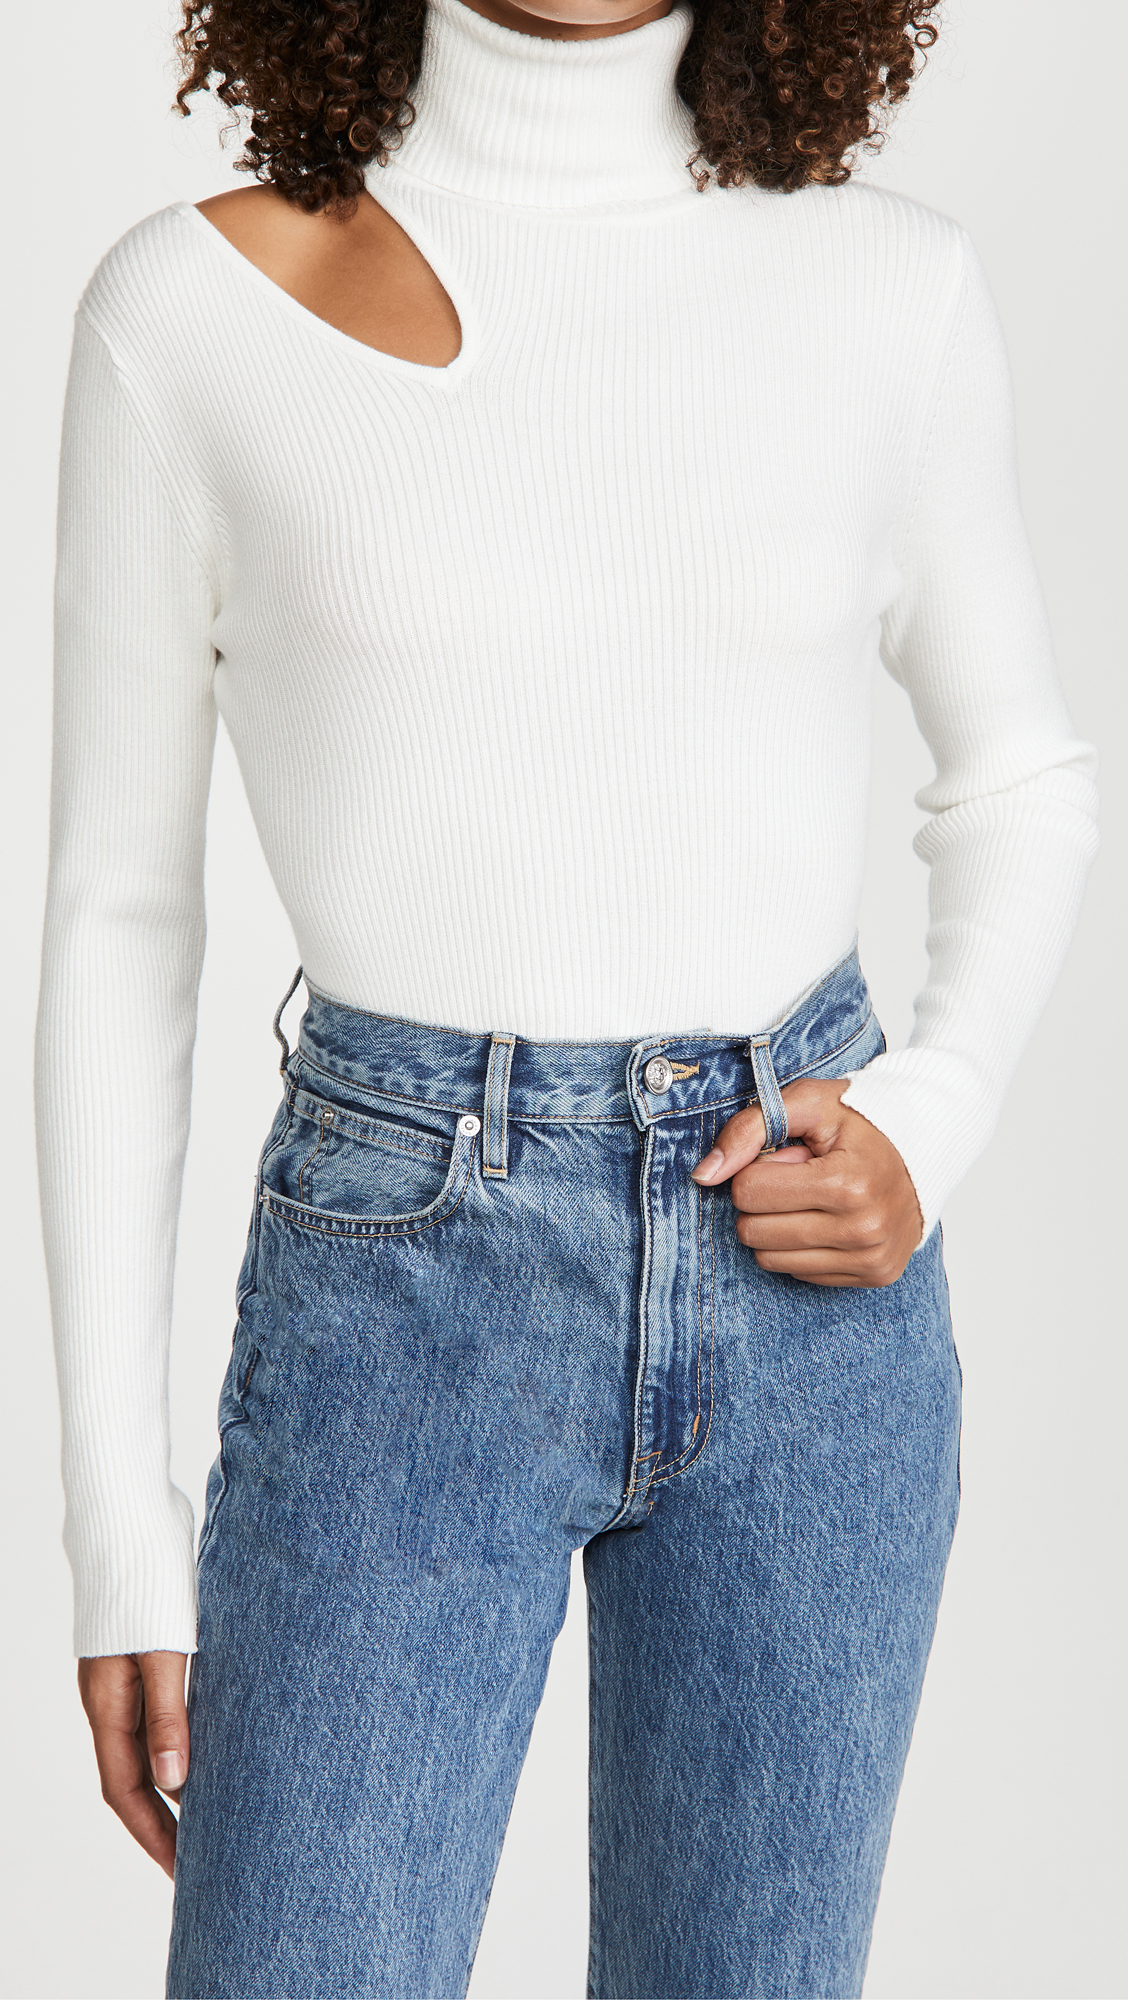 October Best Sellers, Erin Busbee of Busbee Style sharing the ASTR The Label Vivi sweater in white as one of the best sellers for the month